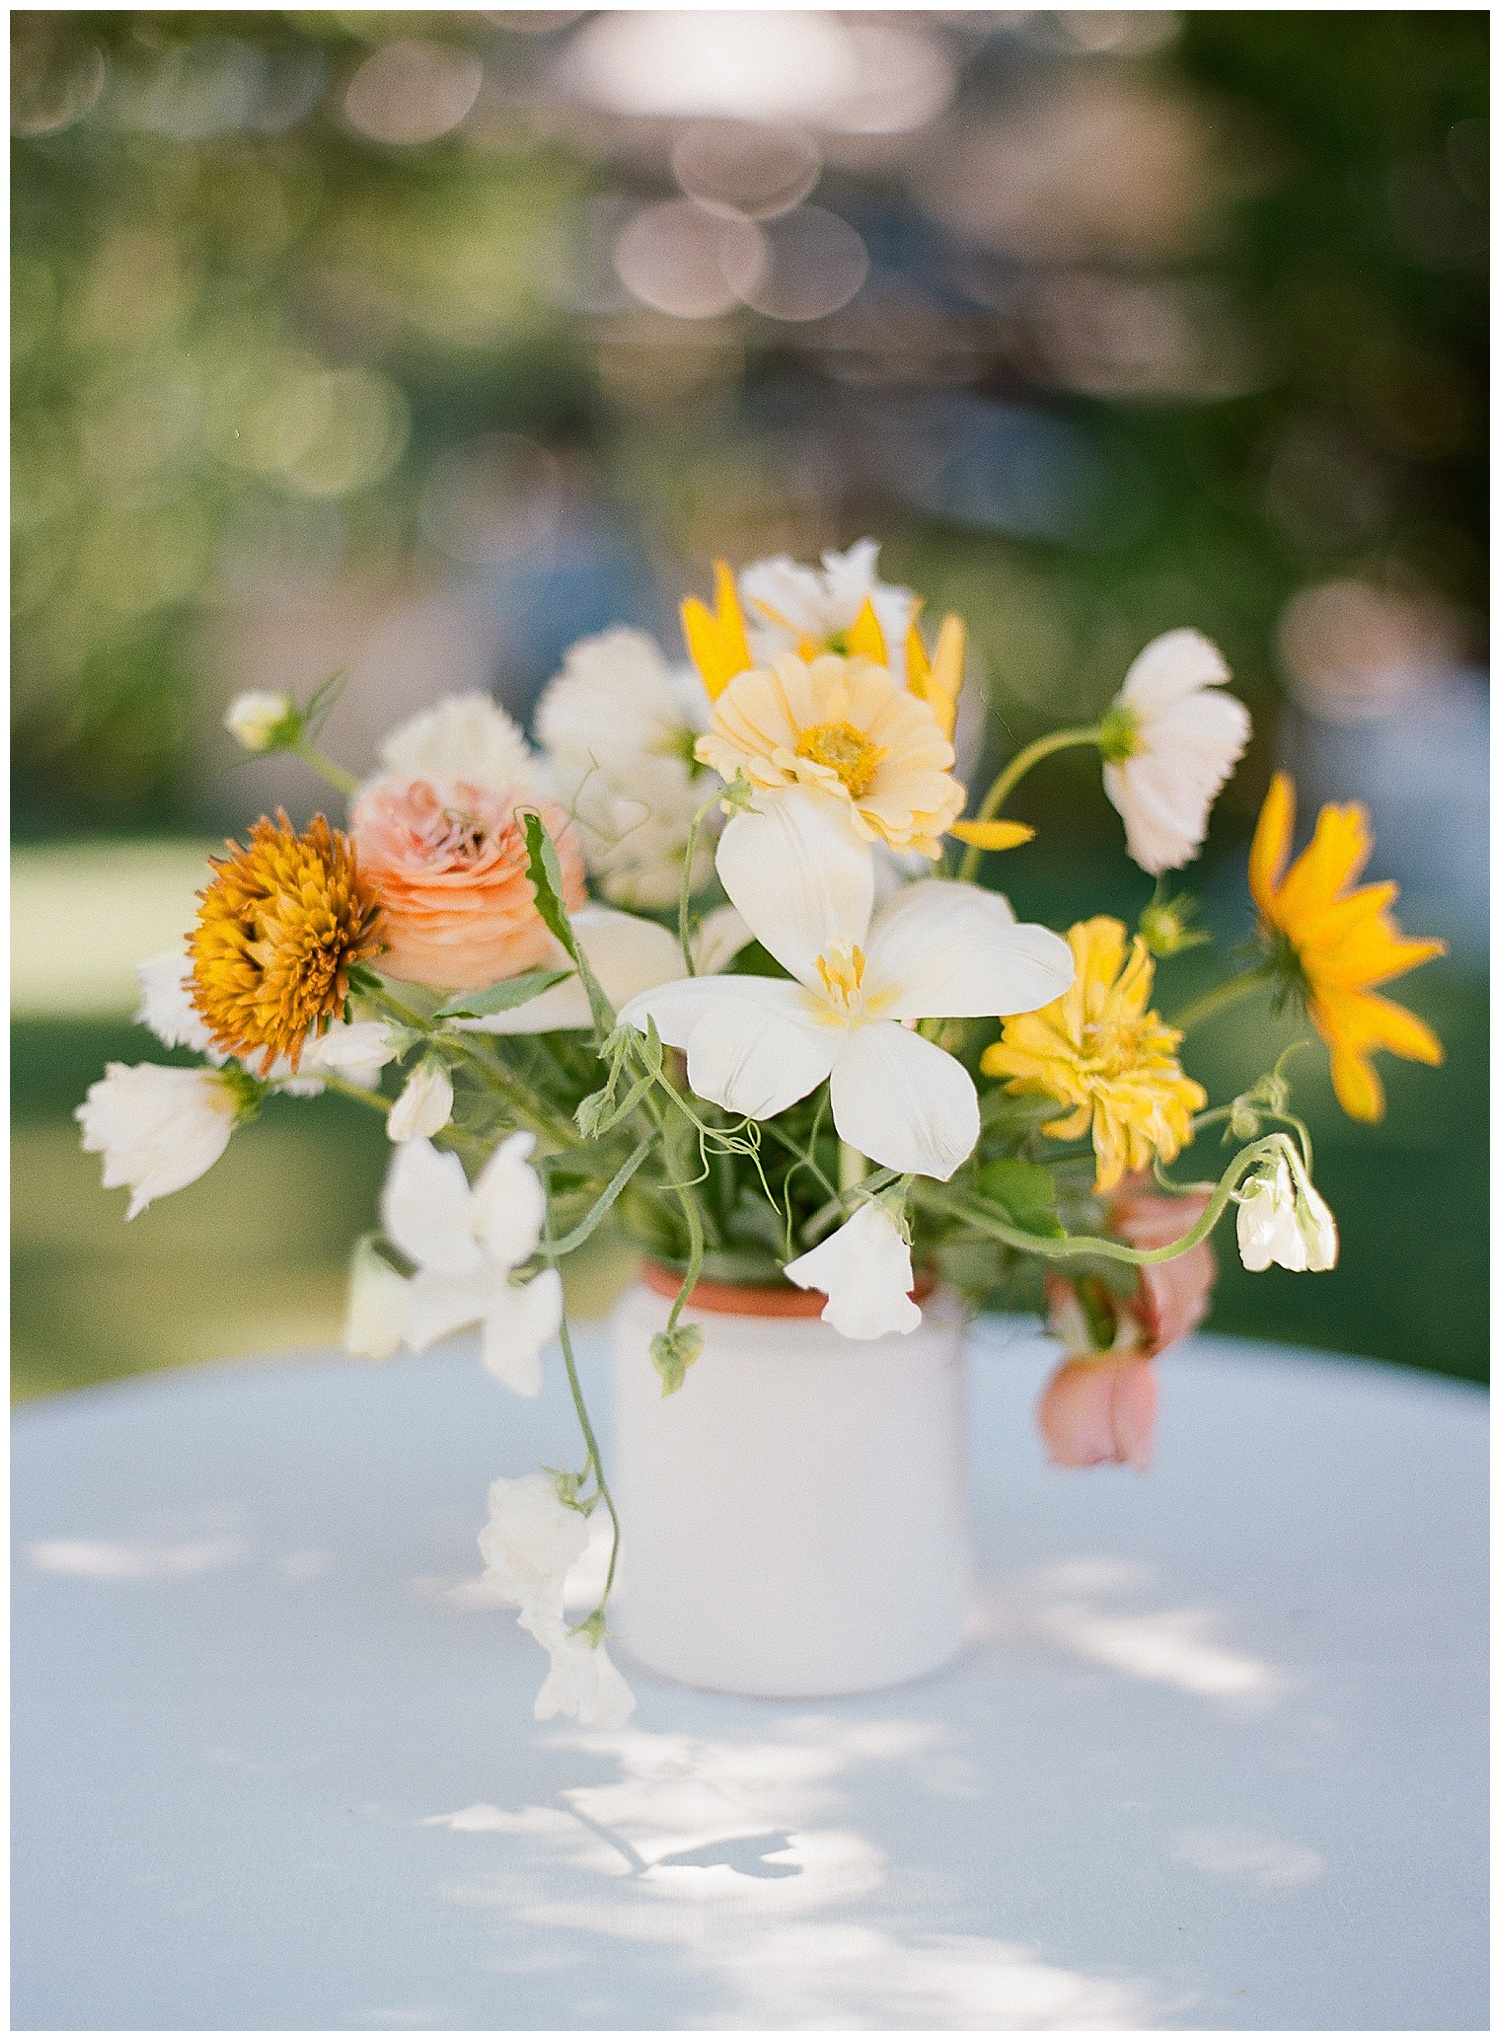 Janine_Licare_Photography_San_Francisco_Wedding_Photographer_Lake_Tahoe_West_Shore_Cafe_Colorful_Summer_0029.jpg